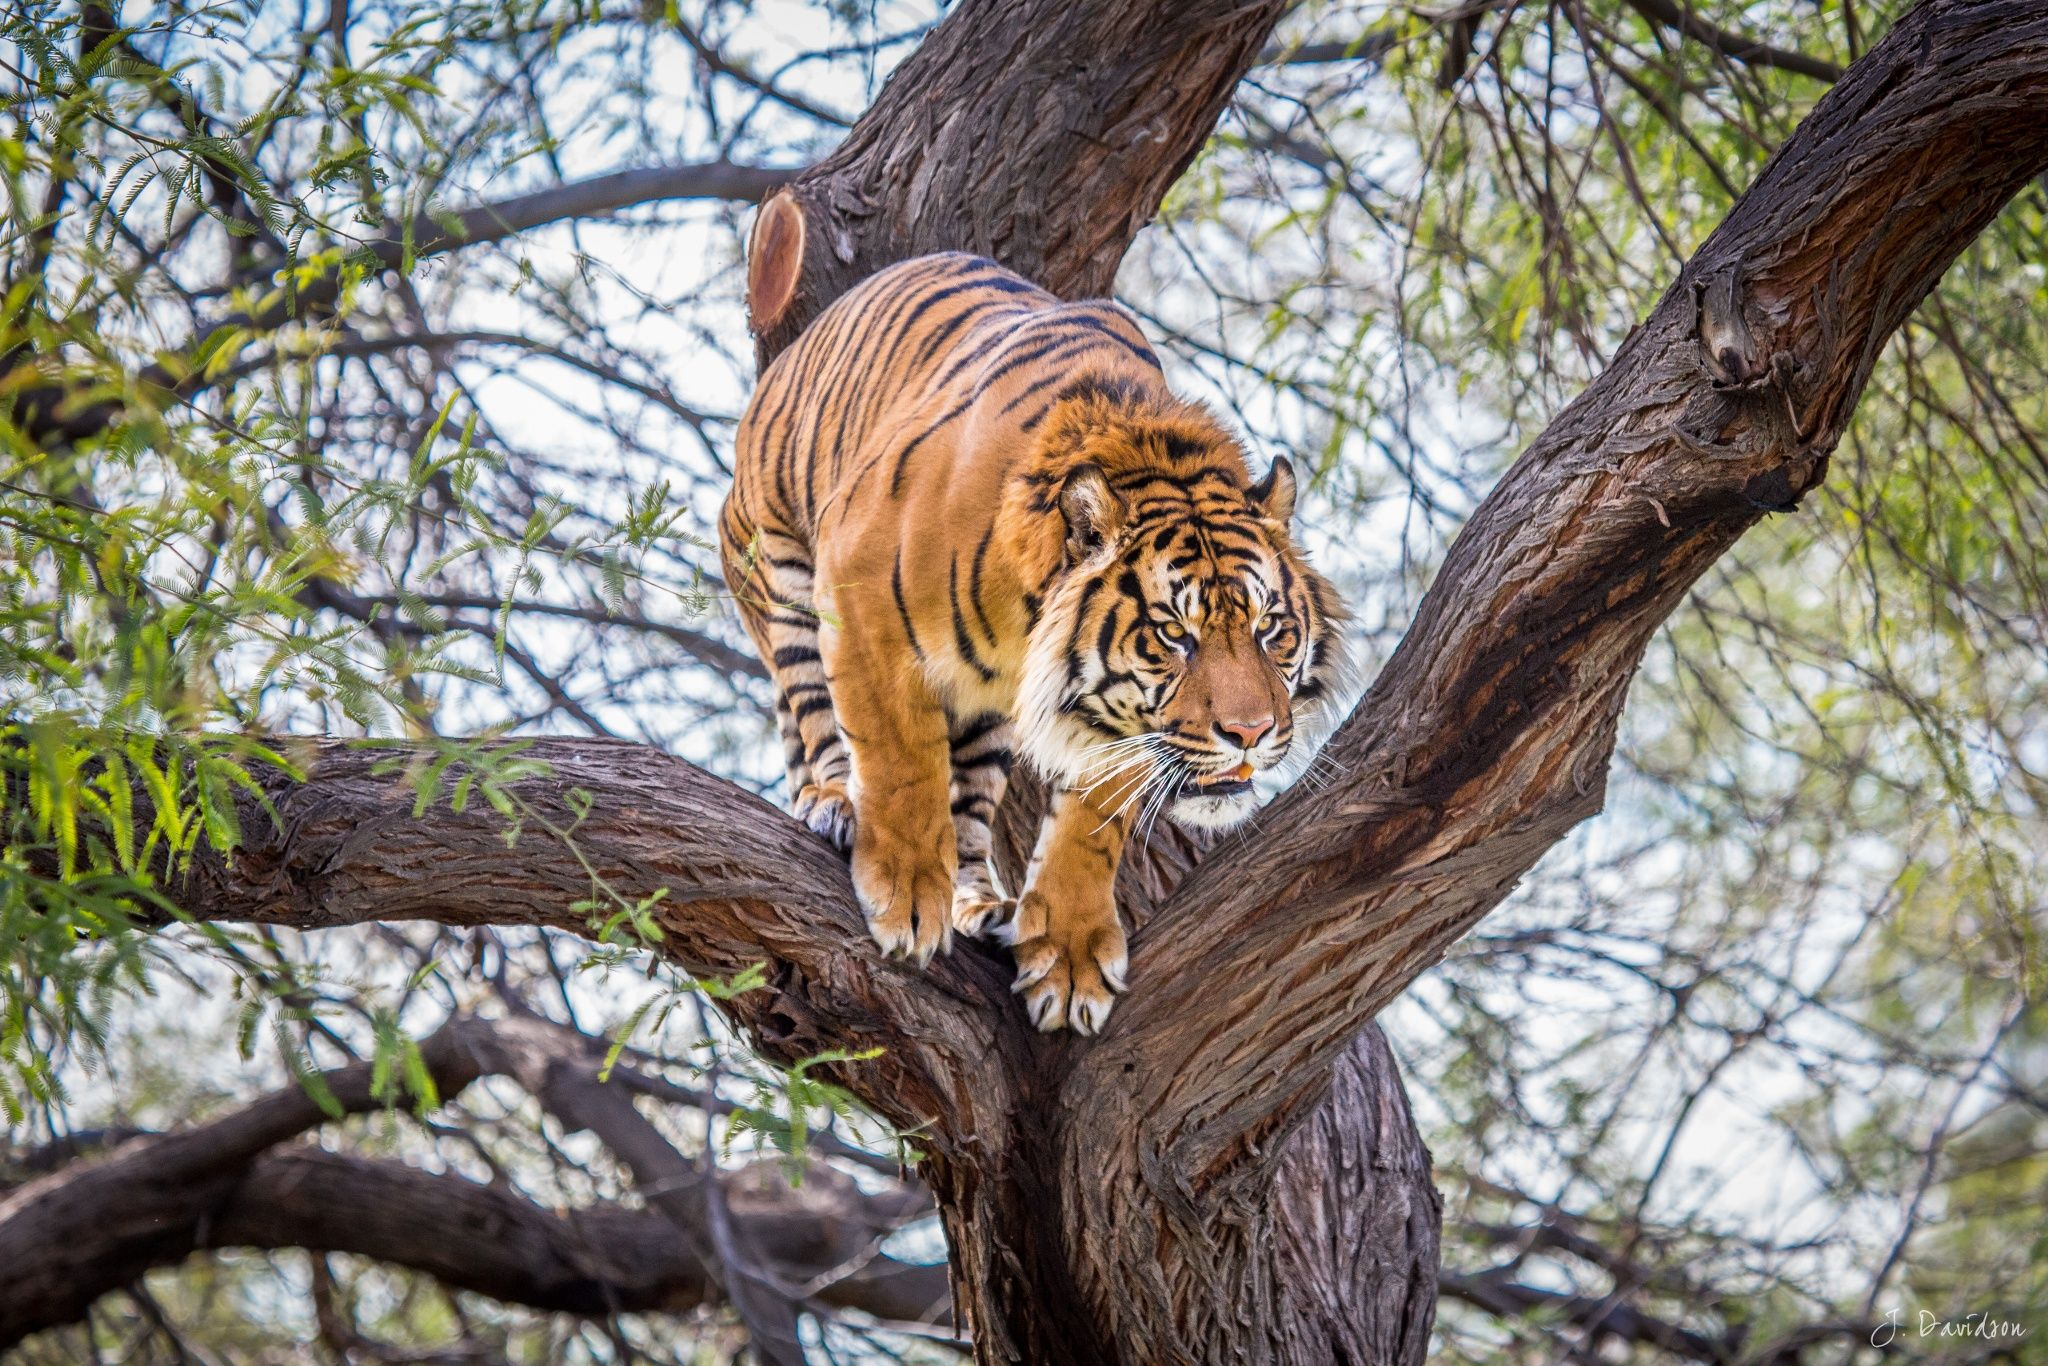 Tiger in a tree by Jim Davidson on 500px